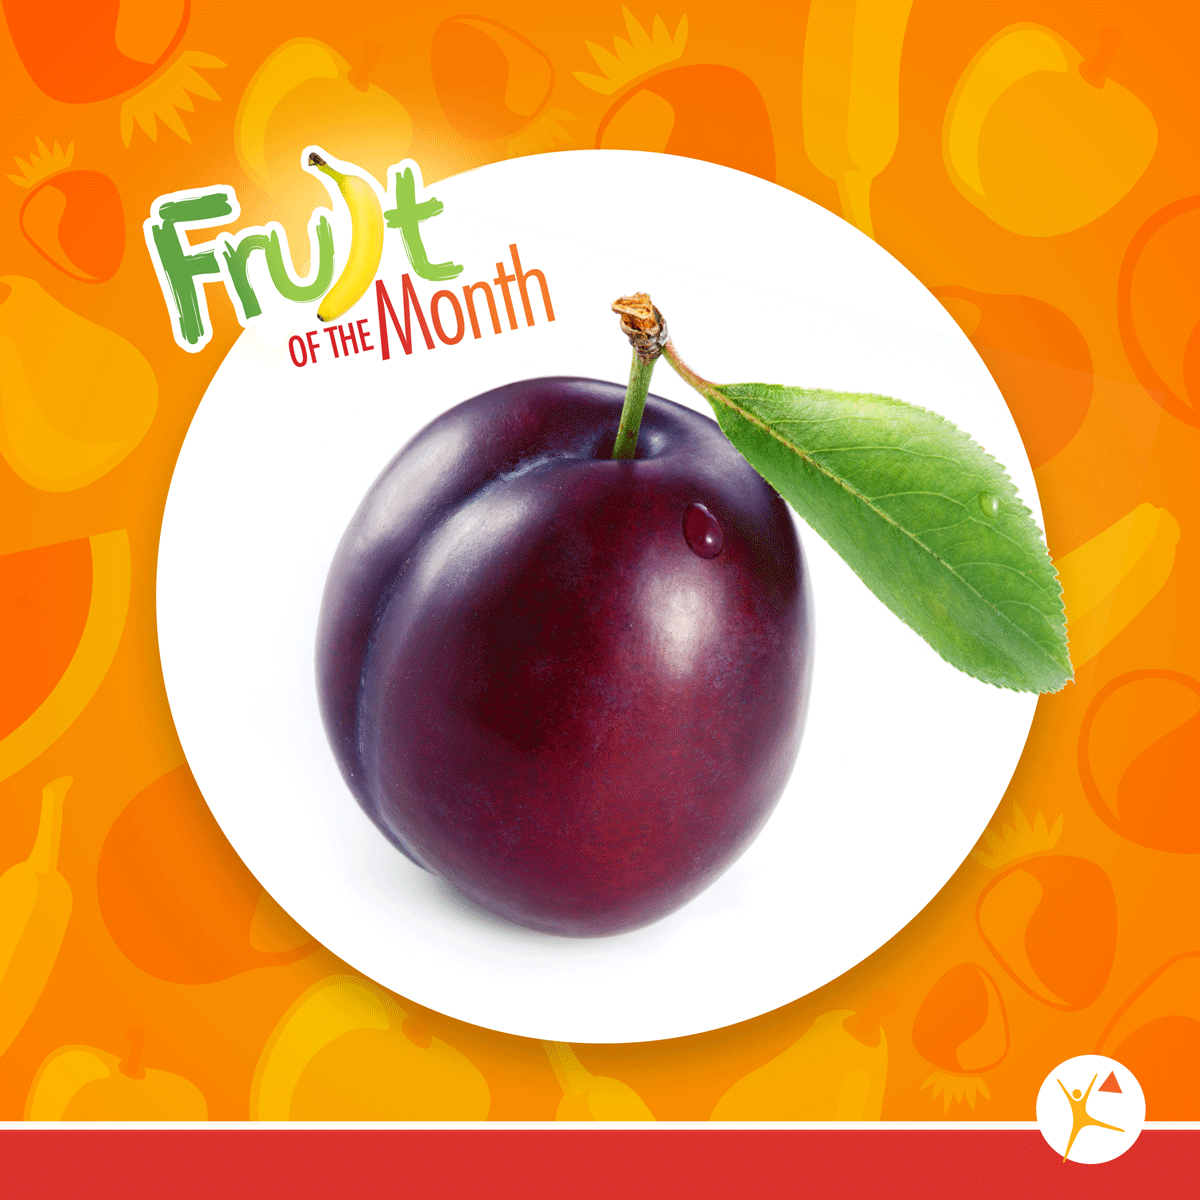 plums, fruit of the month